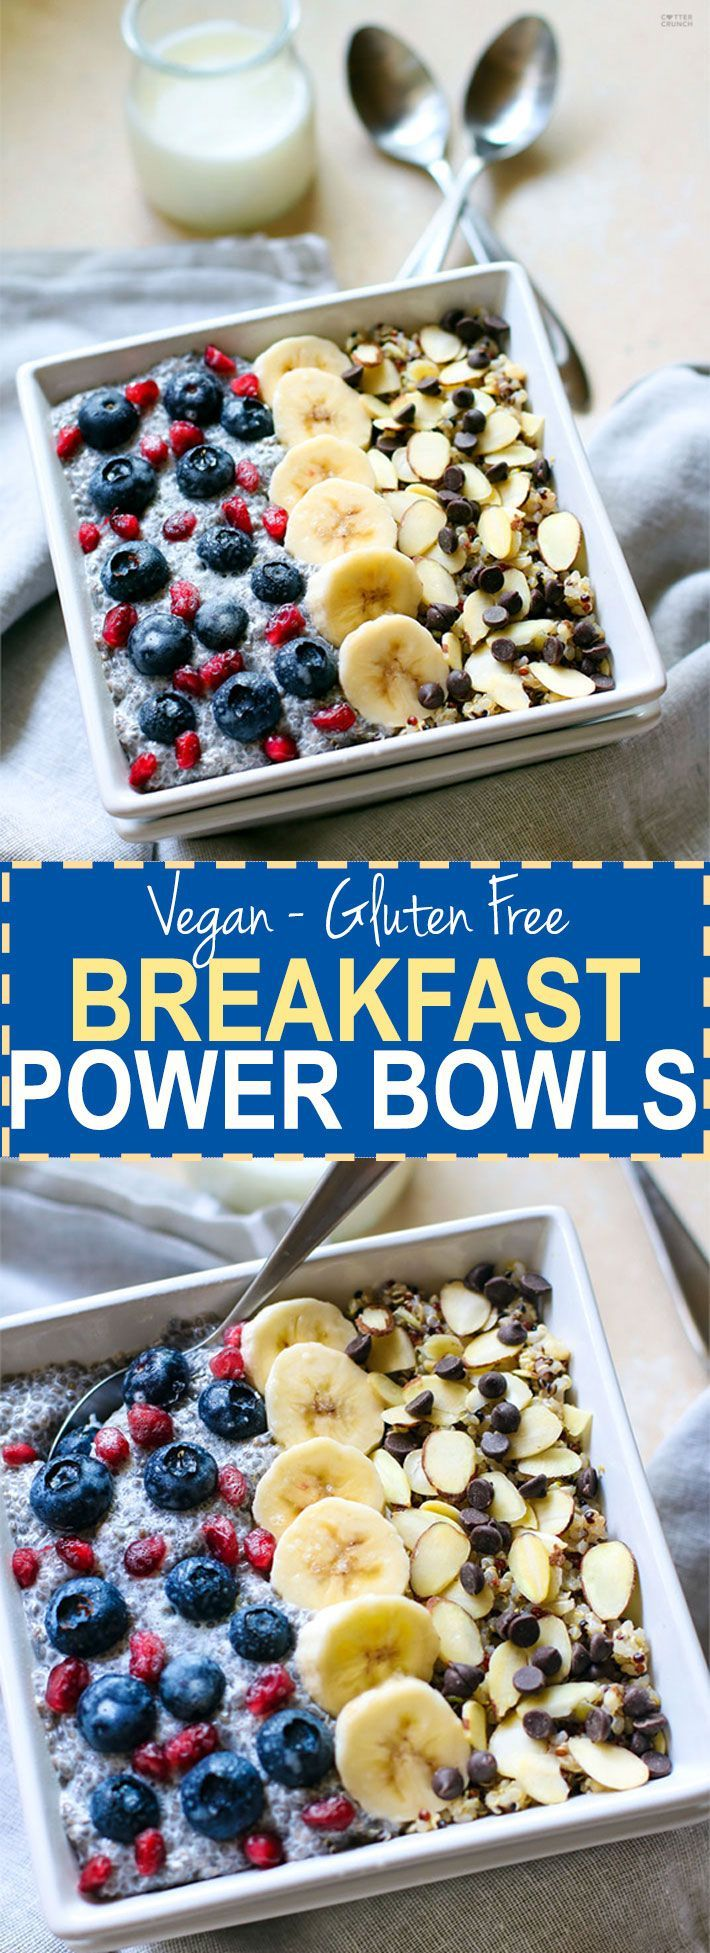 Gluten Free Breakfast Power Bowls! Real energy from real food! These vegan gluten free breakfast power bowls are made with soaked quinoa and chia seed.: